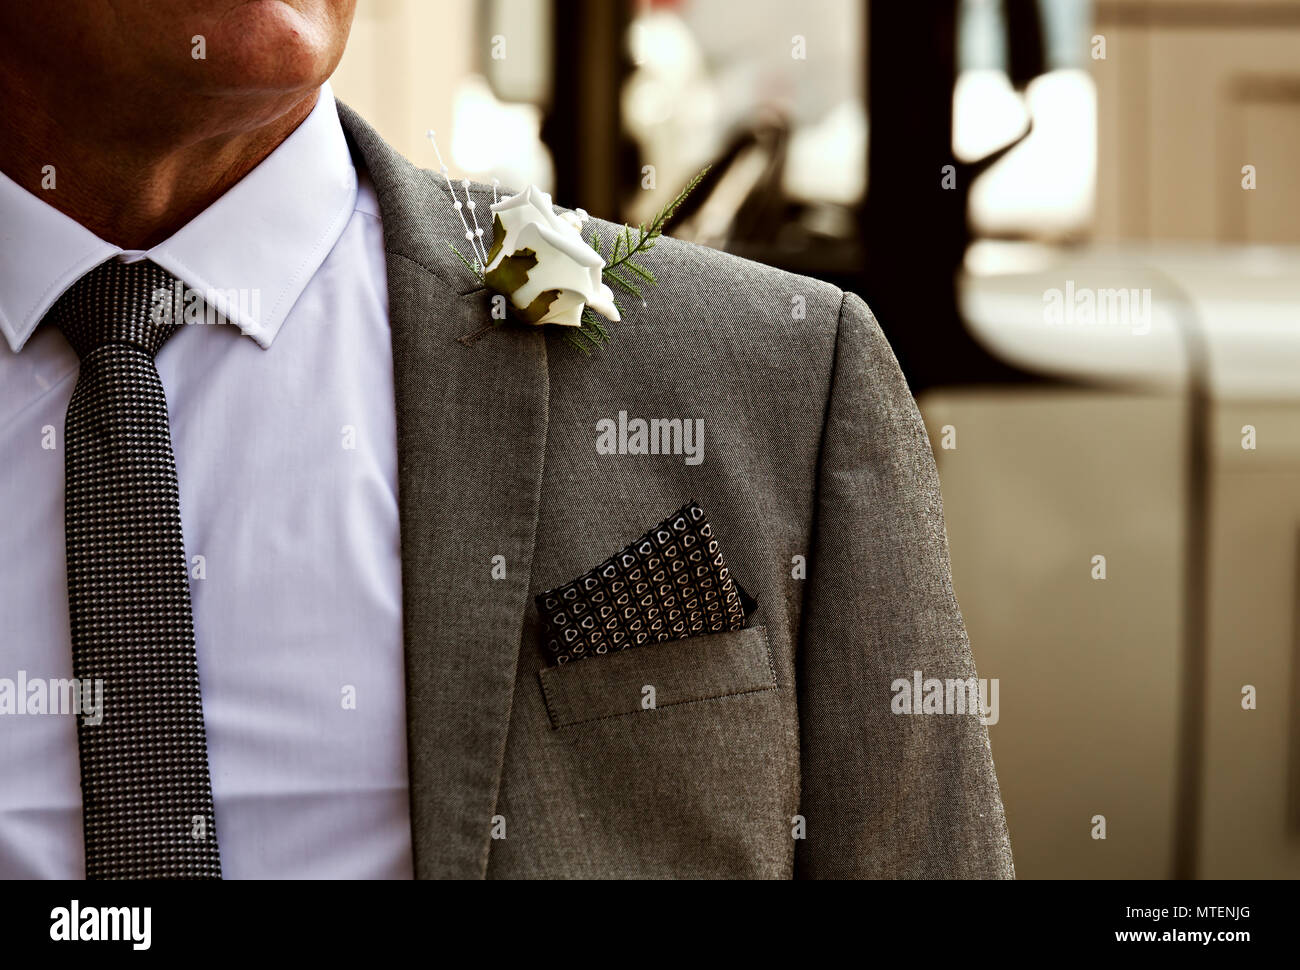 Smartly dressed man in a suit, shirt and tie with a white rose in his lapel at a wedding, could be the groom, father of the bride or best man. Stock Photo